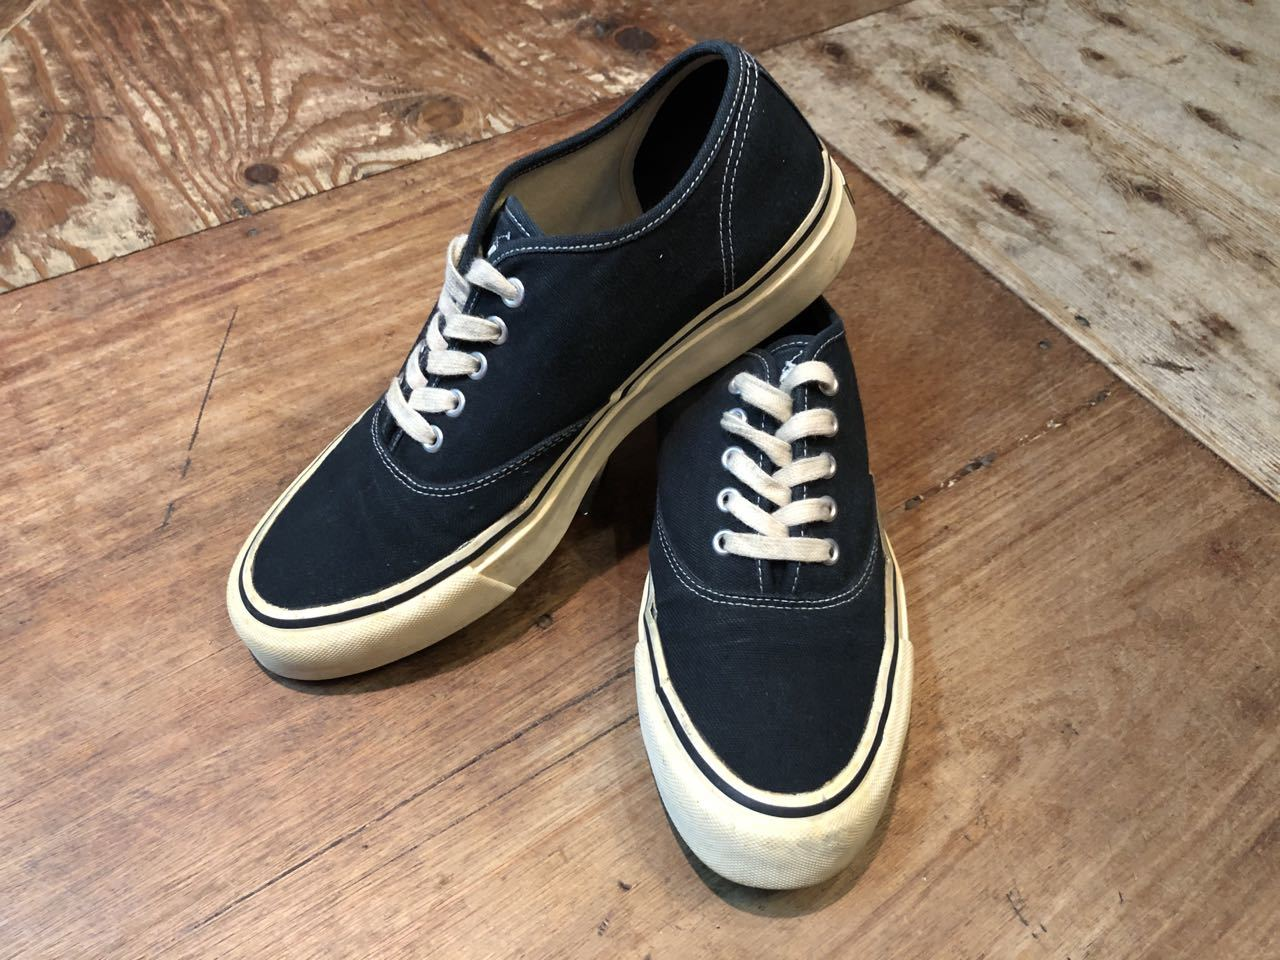 7月2日(木)入荷! POLO RALPH LAUREN DECK SHOES !_c0144020_13441659.jpg